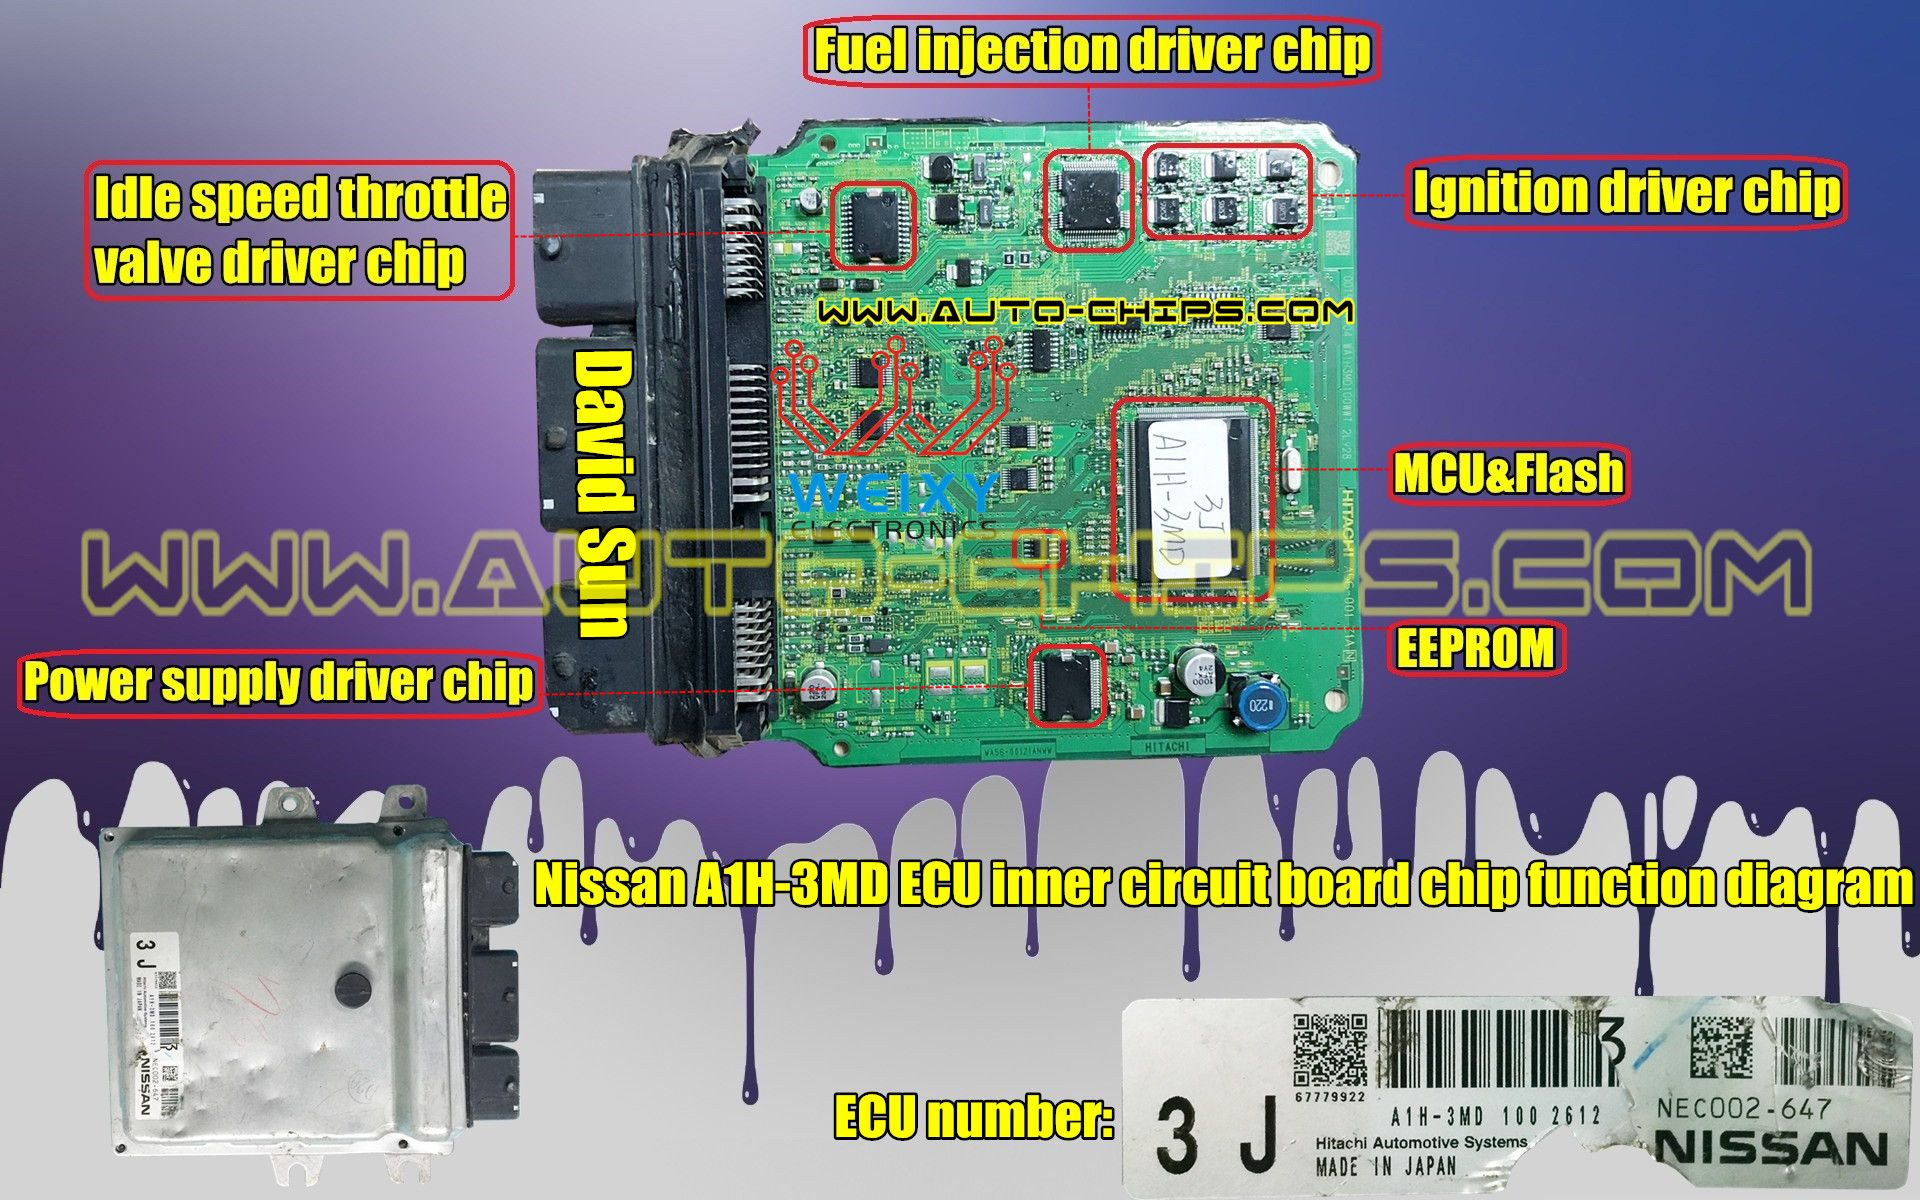 Nissan A1h 3md Ecu Inner Circuit Board Chip Function Diagram We Supply All Kinds Of Nissan Ecu Chips Place Car Ecu Automotive Technician Automotive Electrical